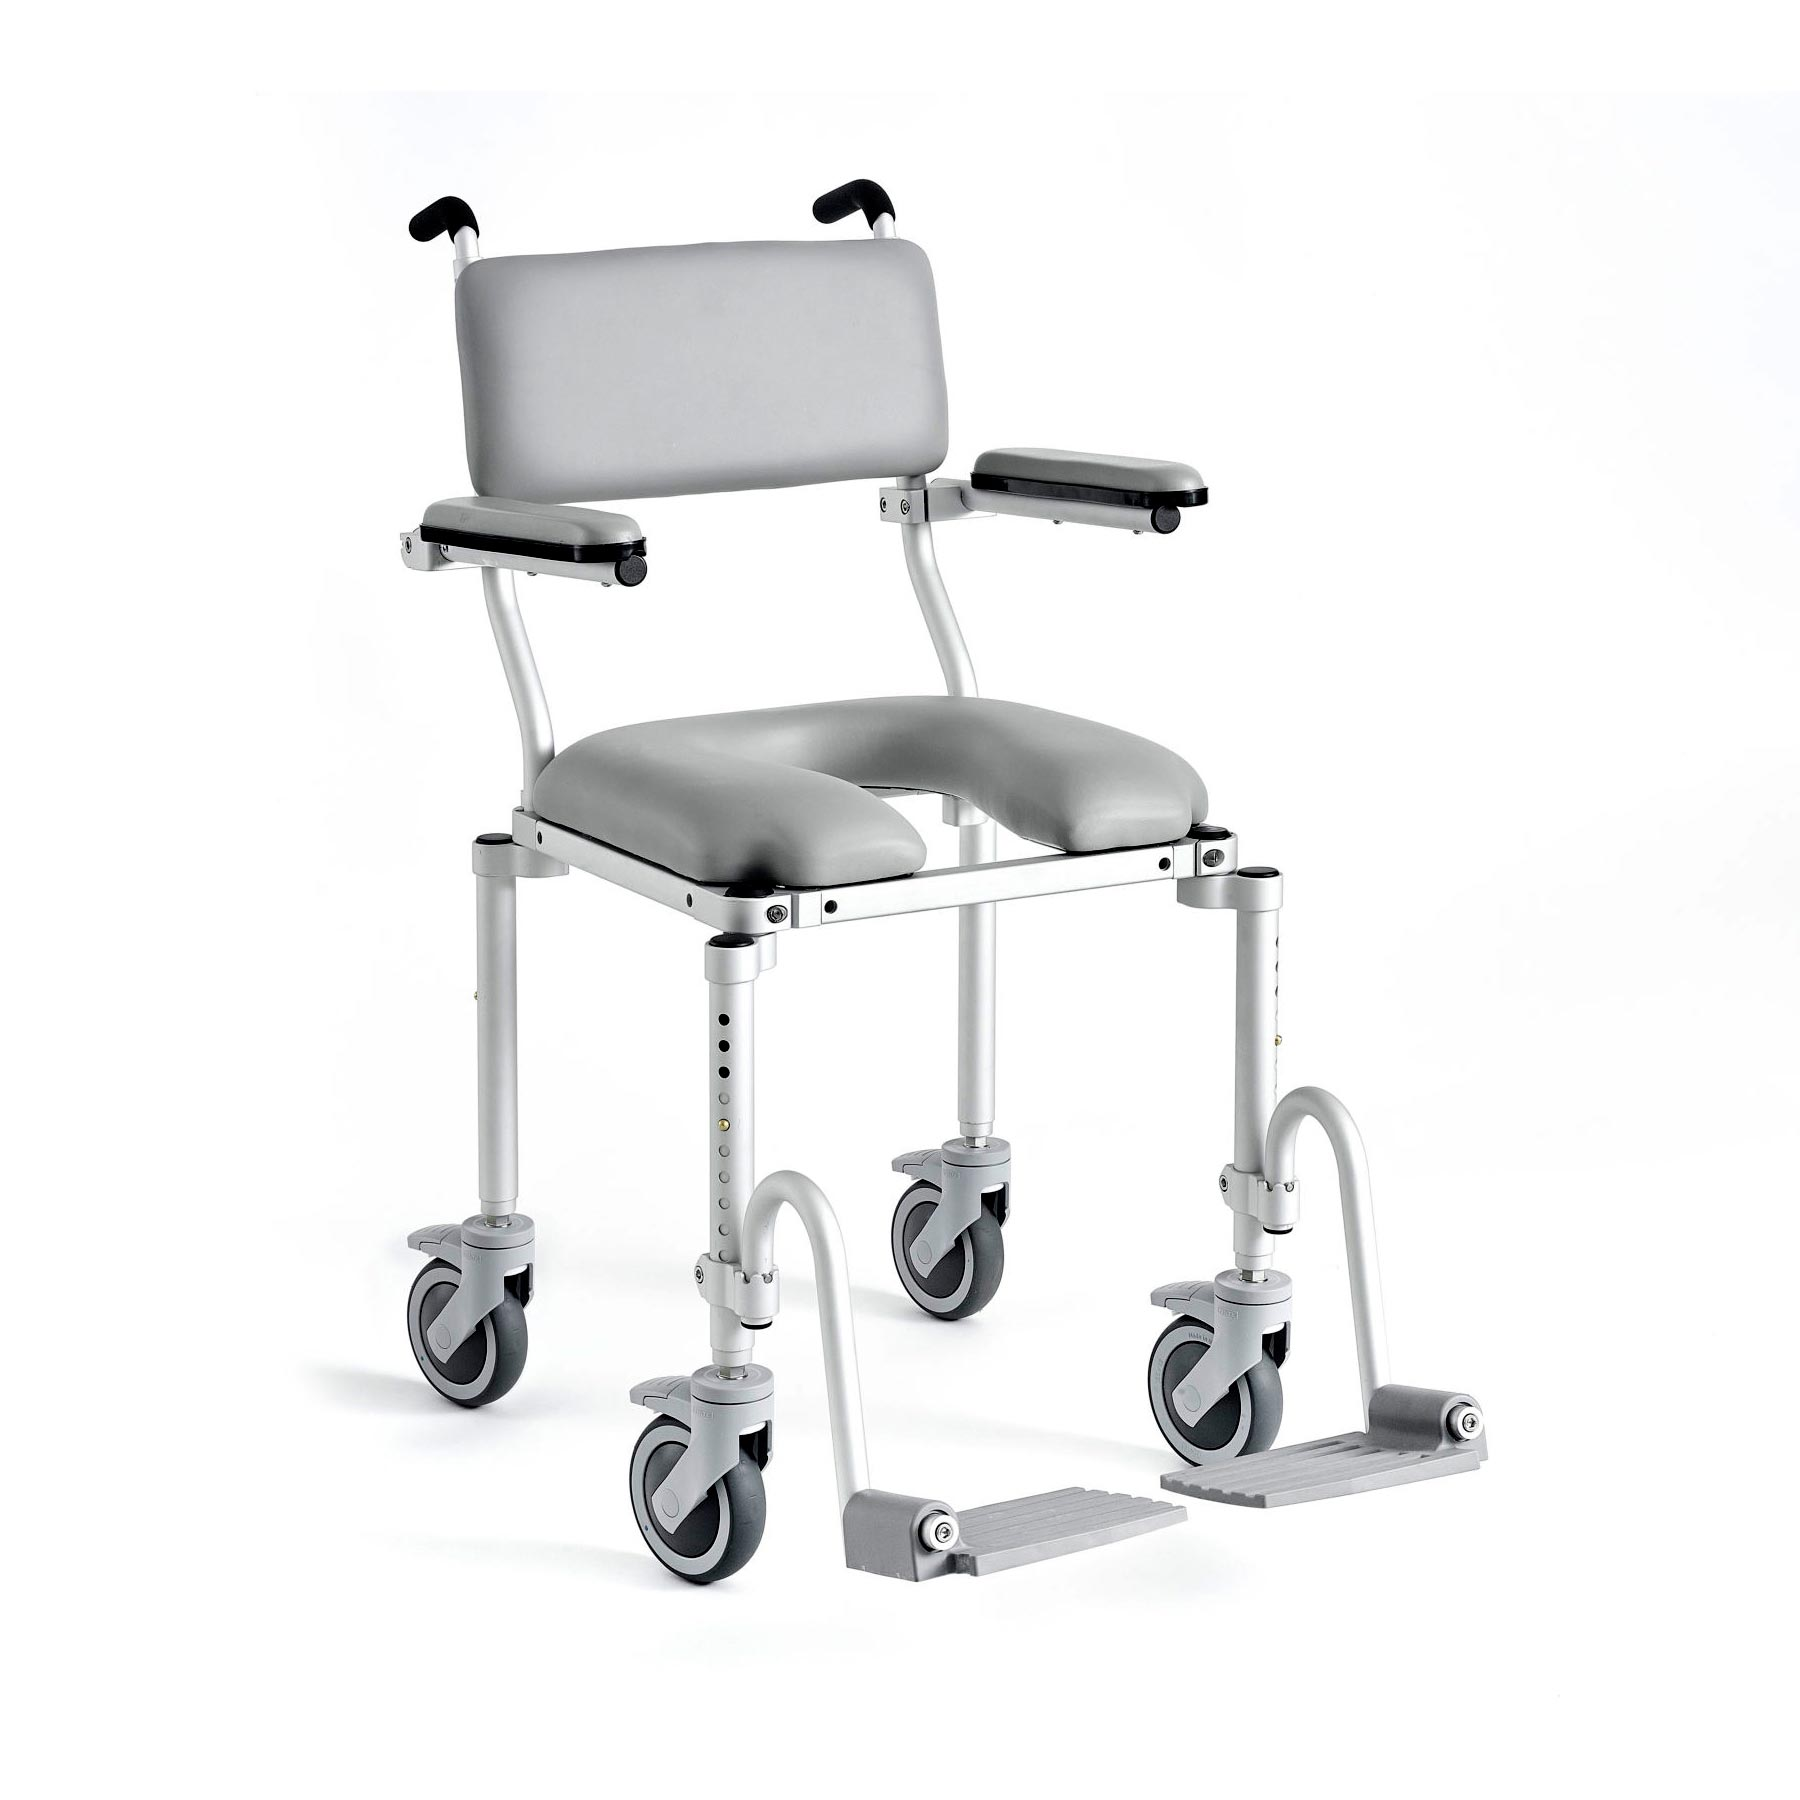 Nuprodx 4000 Roll-In-Shower Commode Chair | Medicaleshop